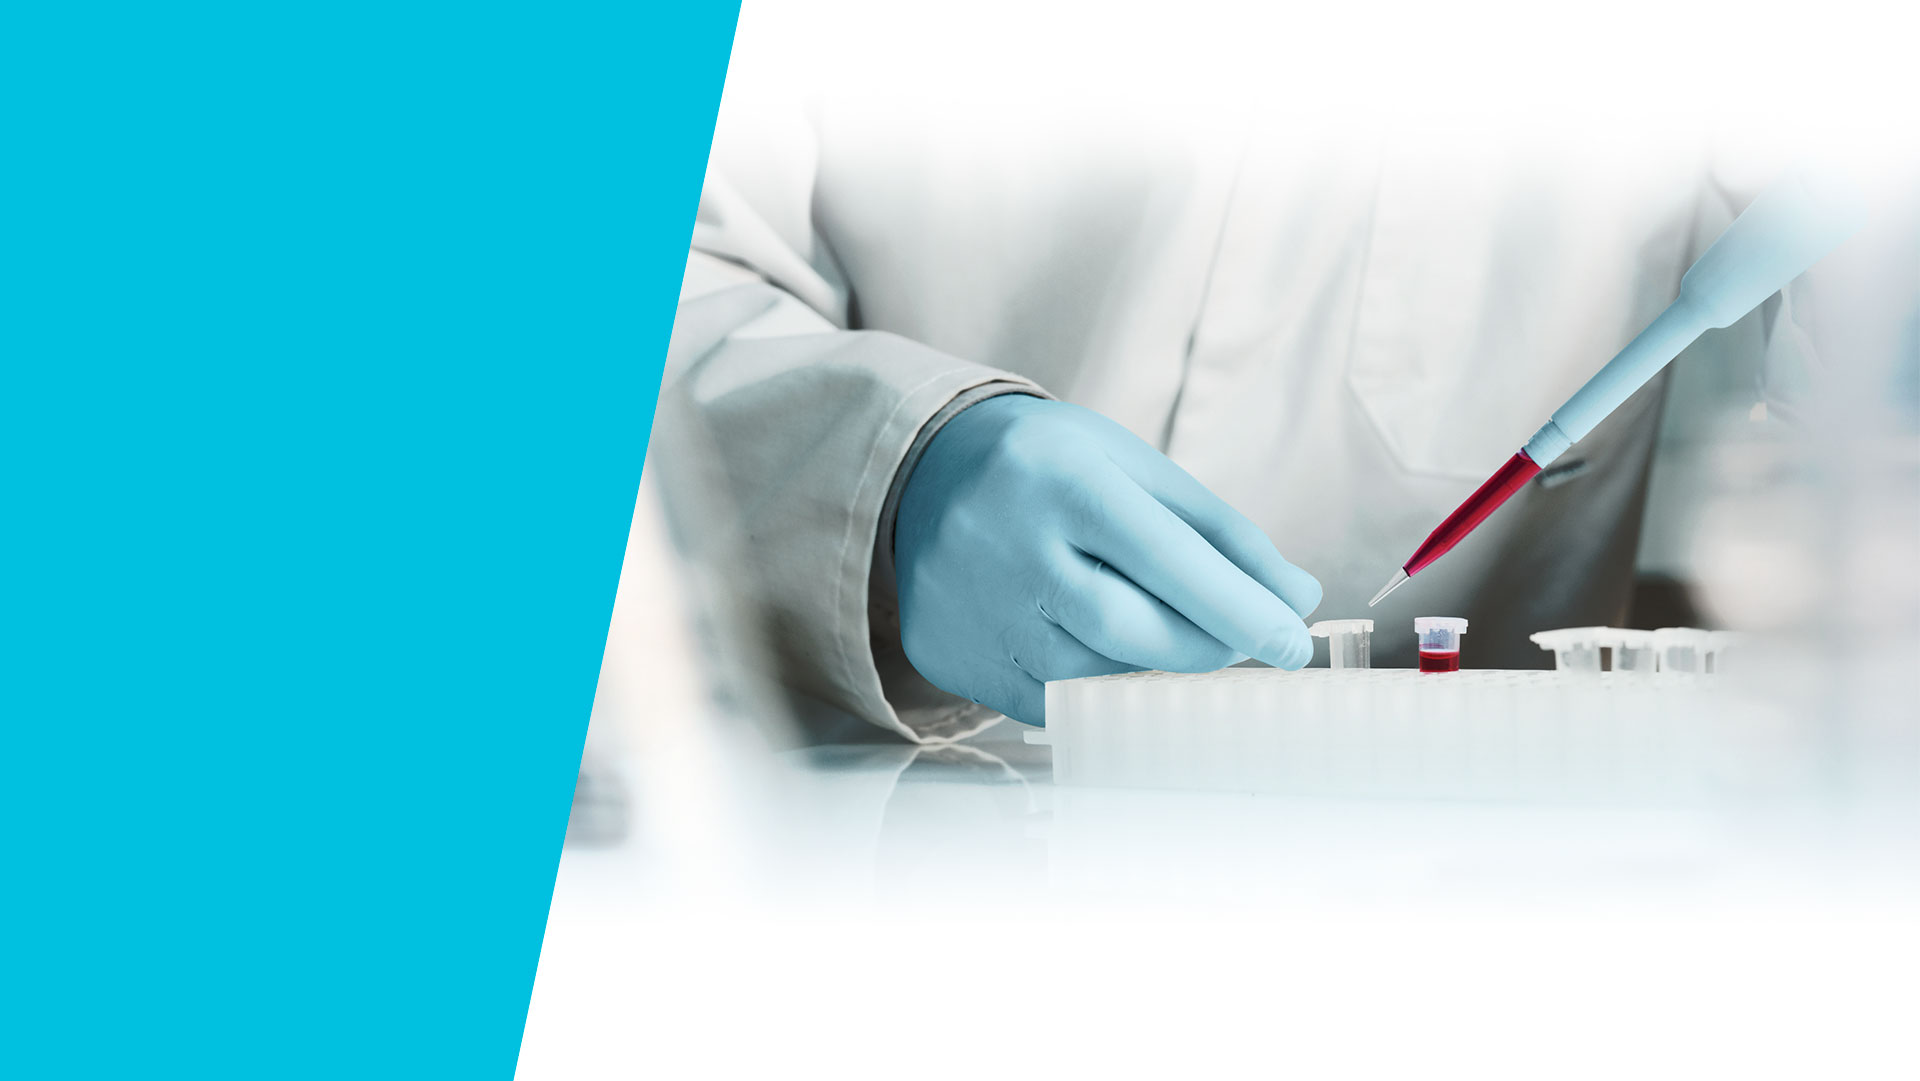 Working in pharmaceutical manufacturing